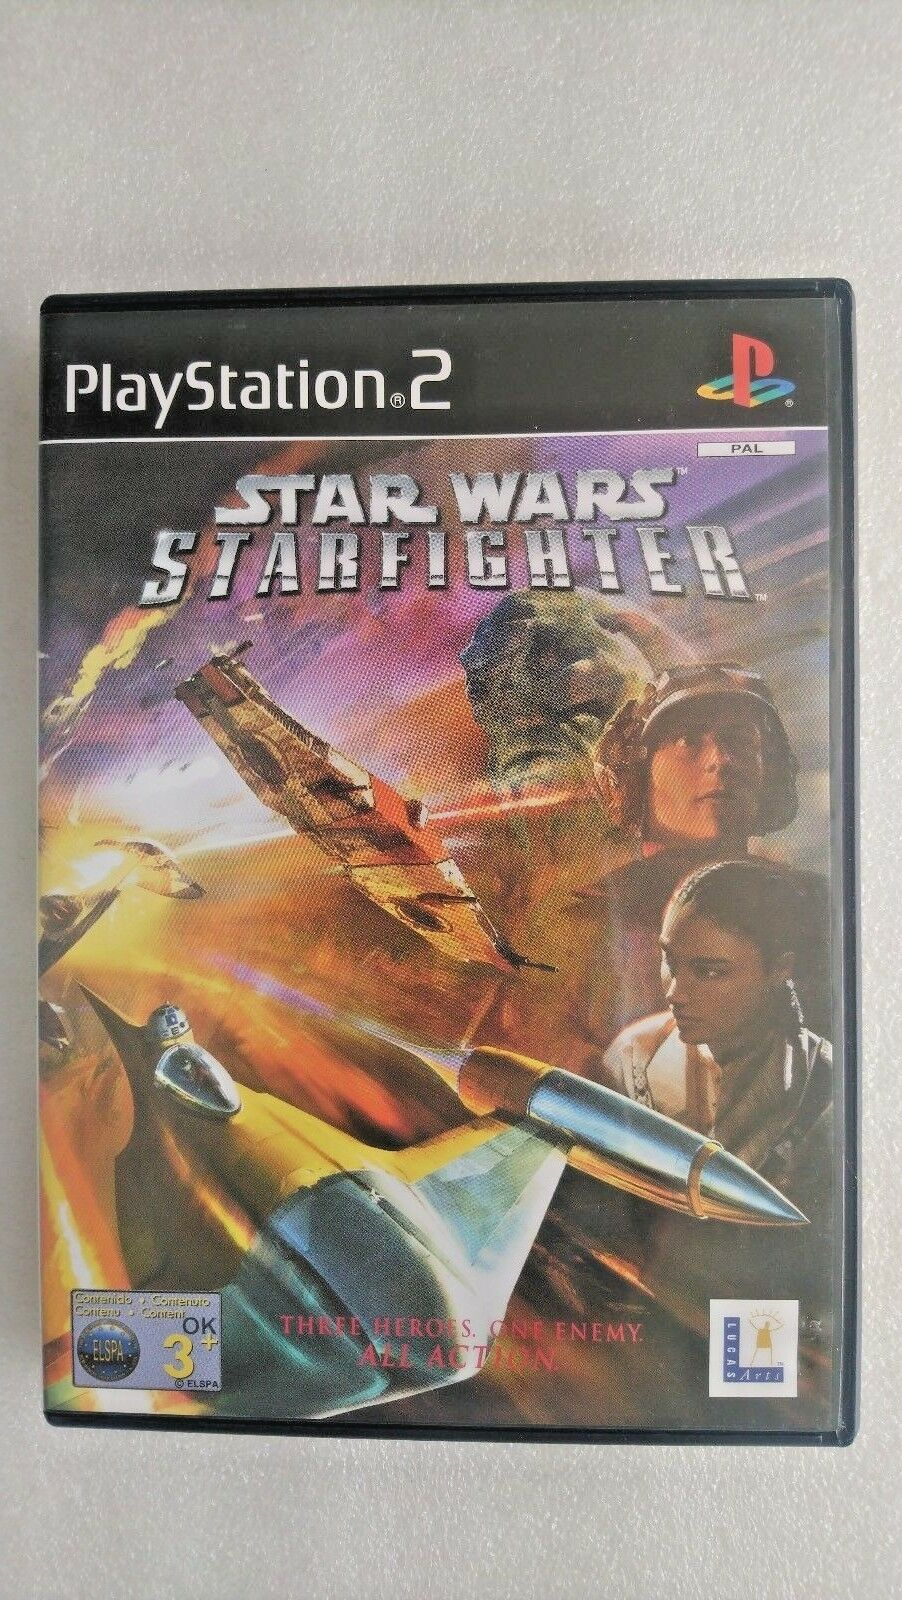 Star Wars Starfighter (Sony PlayStation 2, 2001)